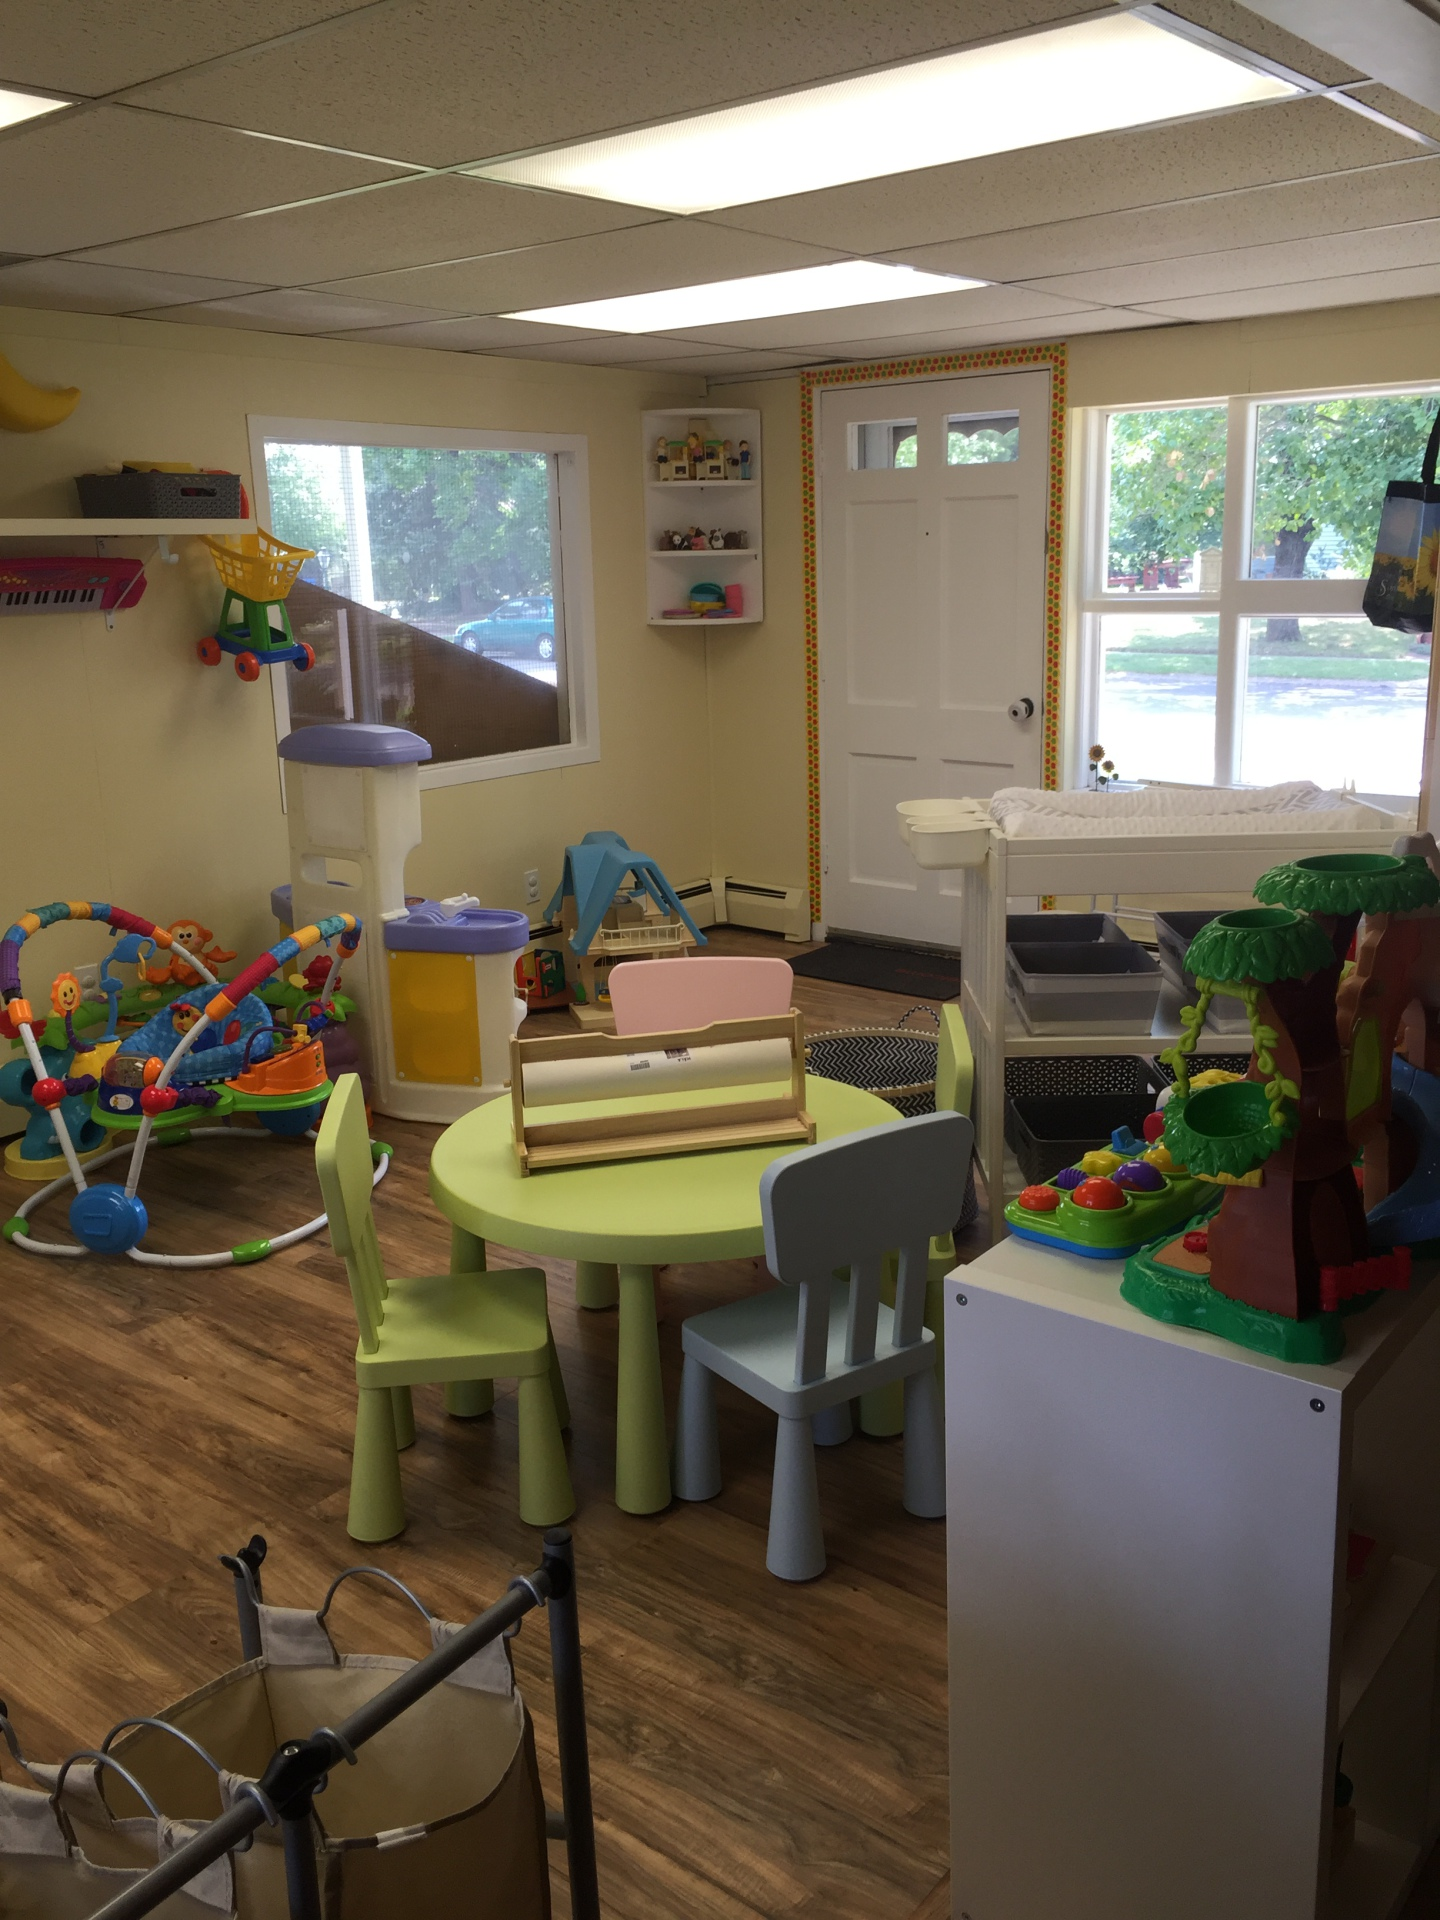 A wonderful, safe environment for children to play and learn.